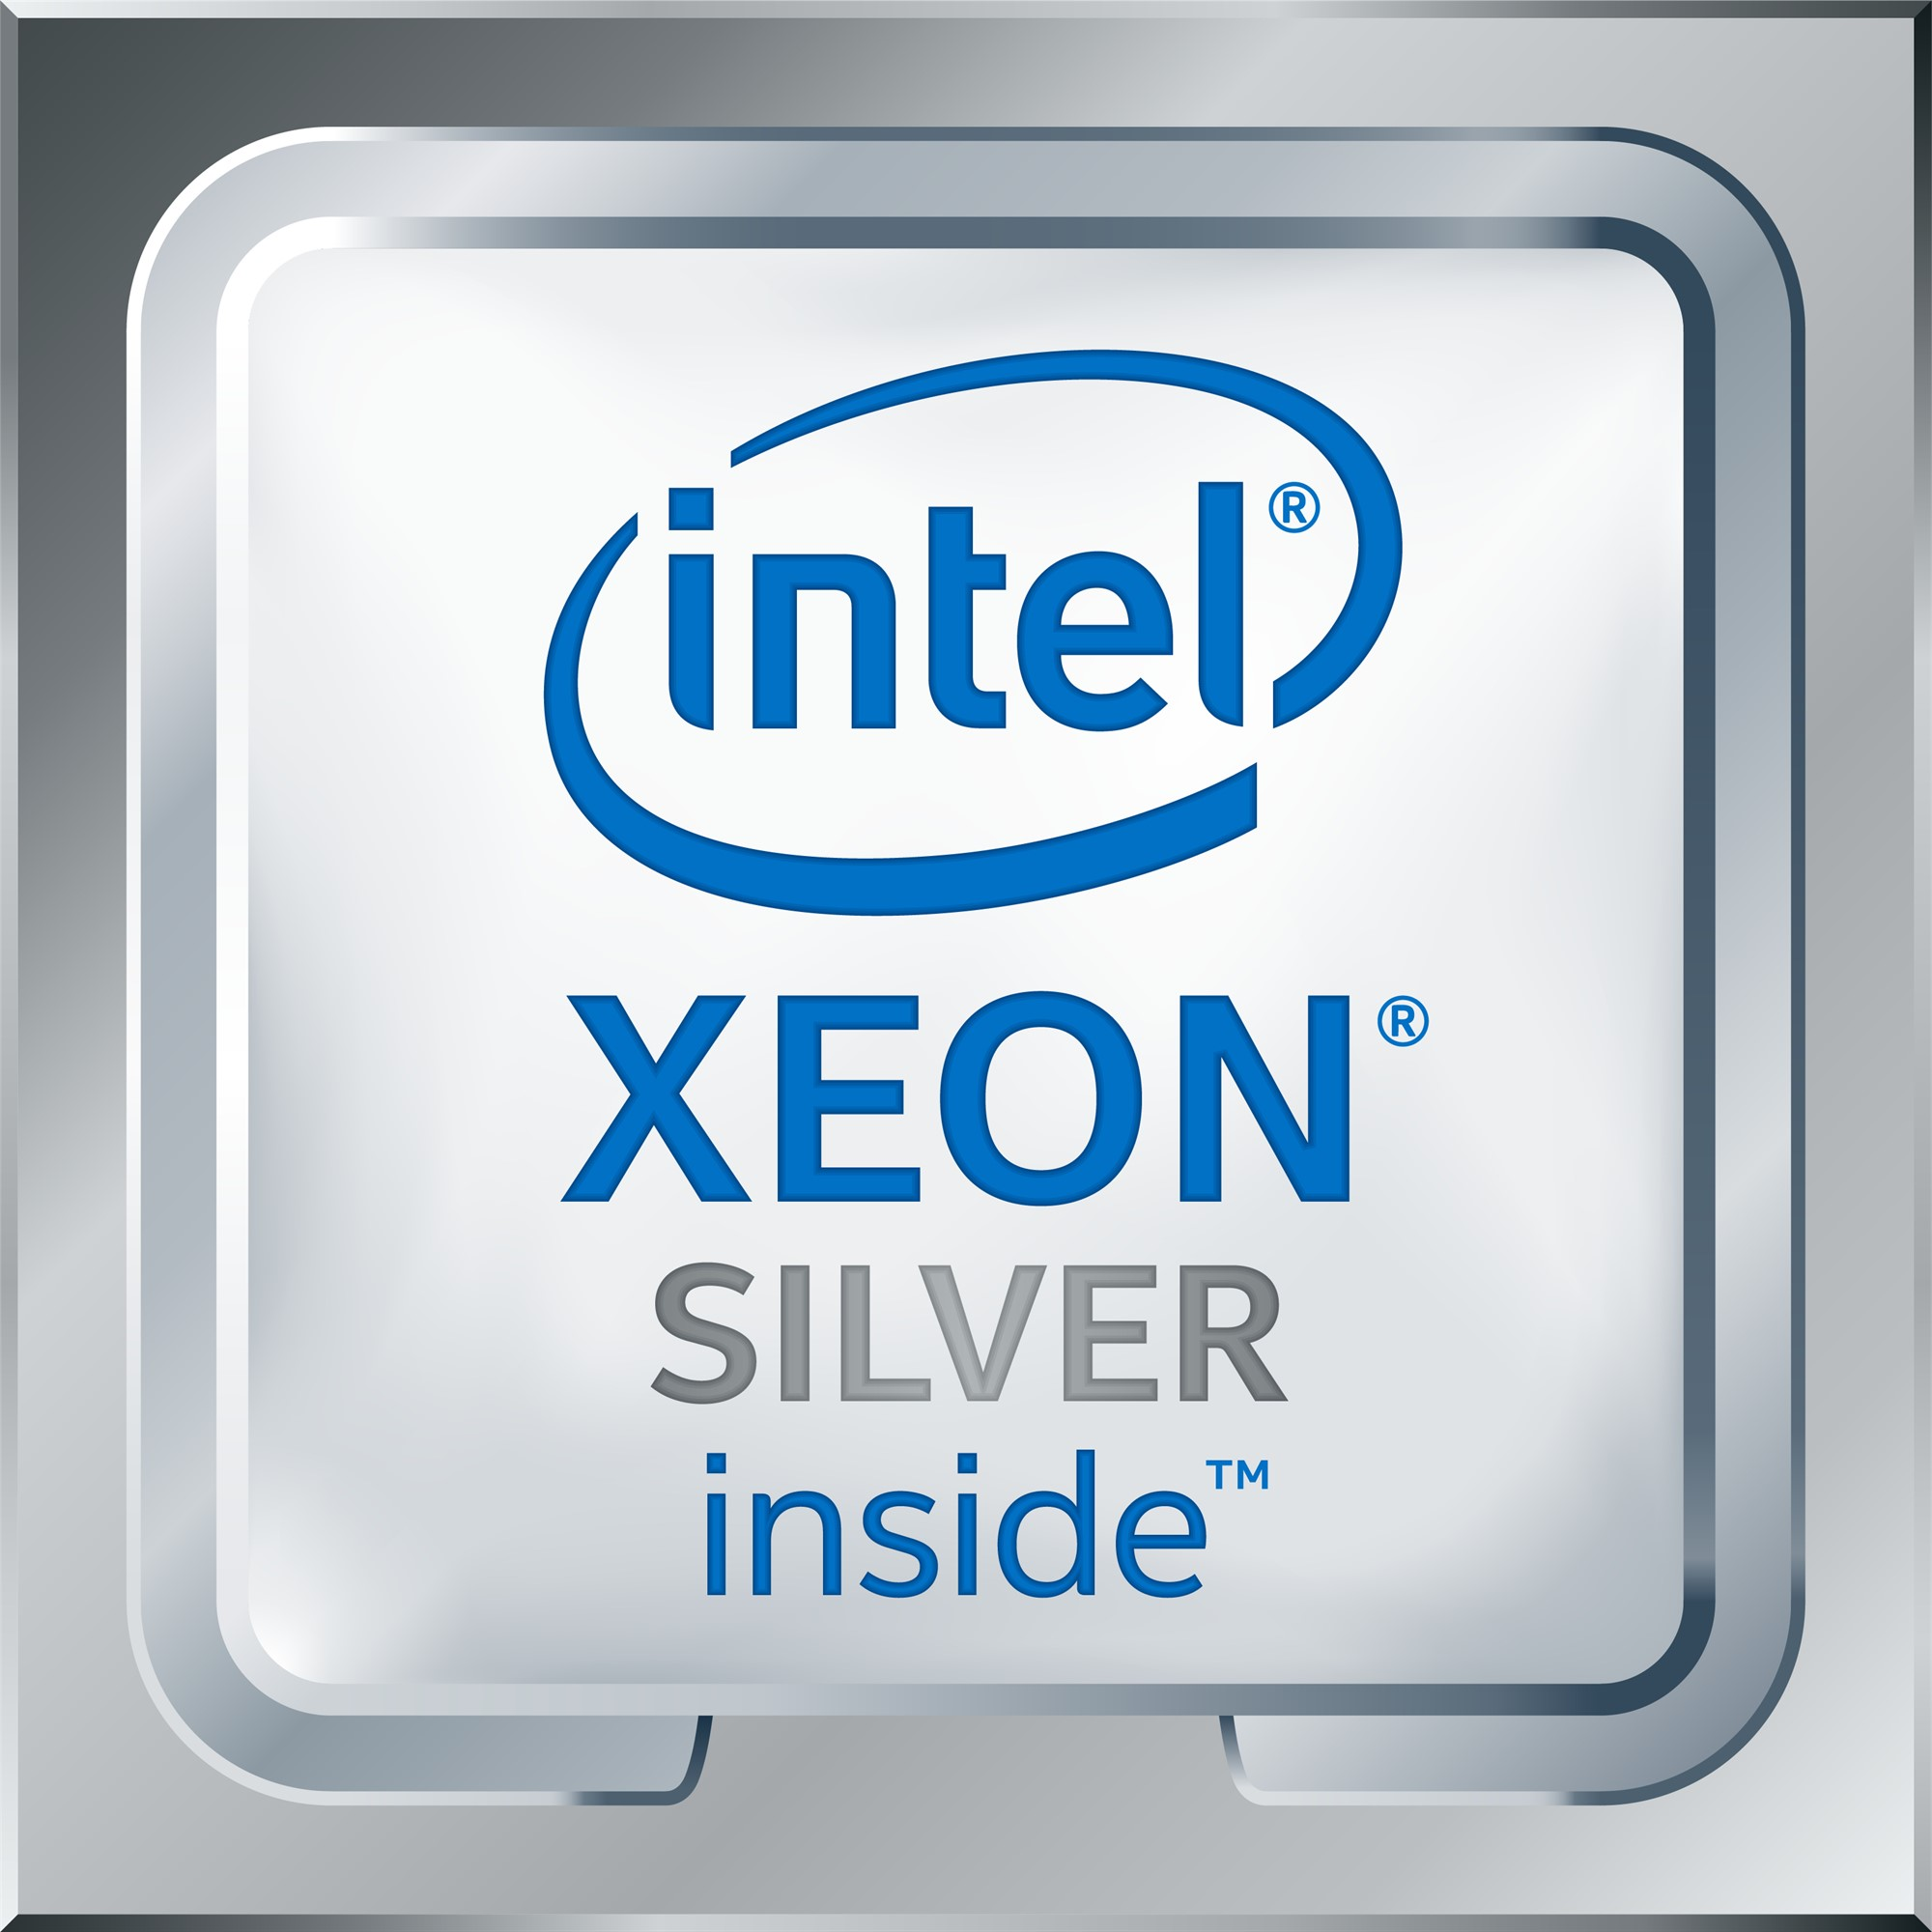 INTEL CD8067303567200 XEON SILVER 4116 PROCESSOR (16.5M CACHE, 2.10 GHZ) 2.10GHZ 16.5MB L3